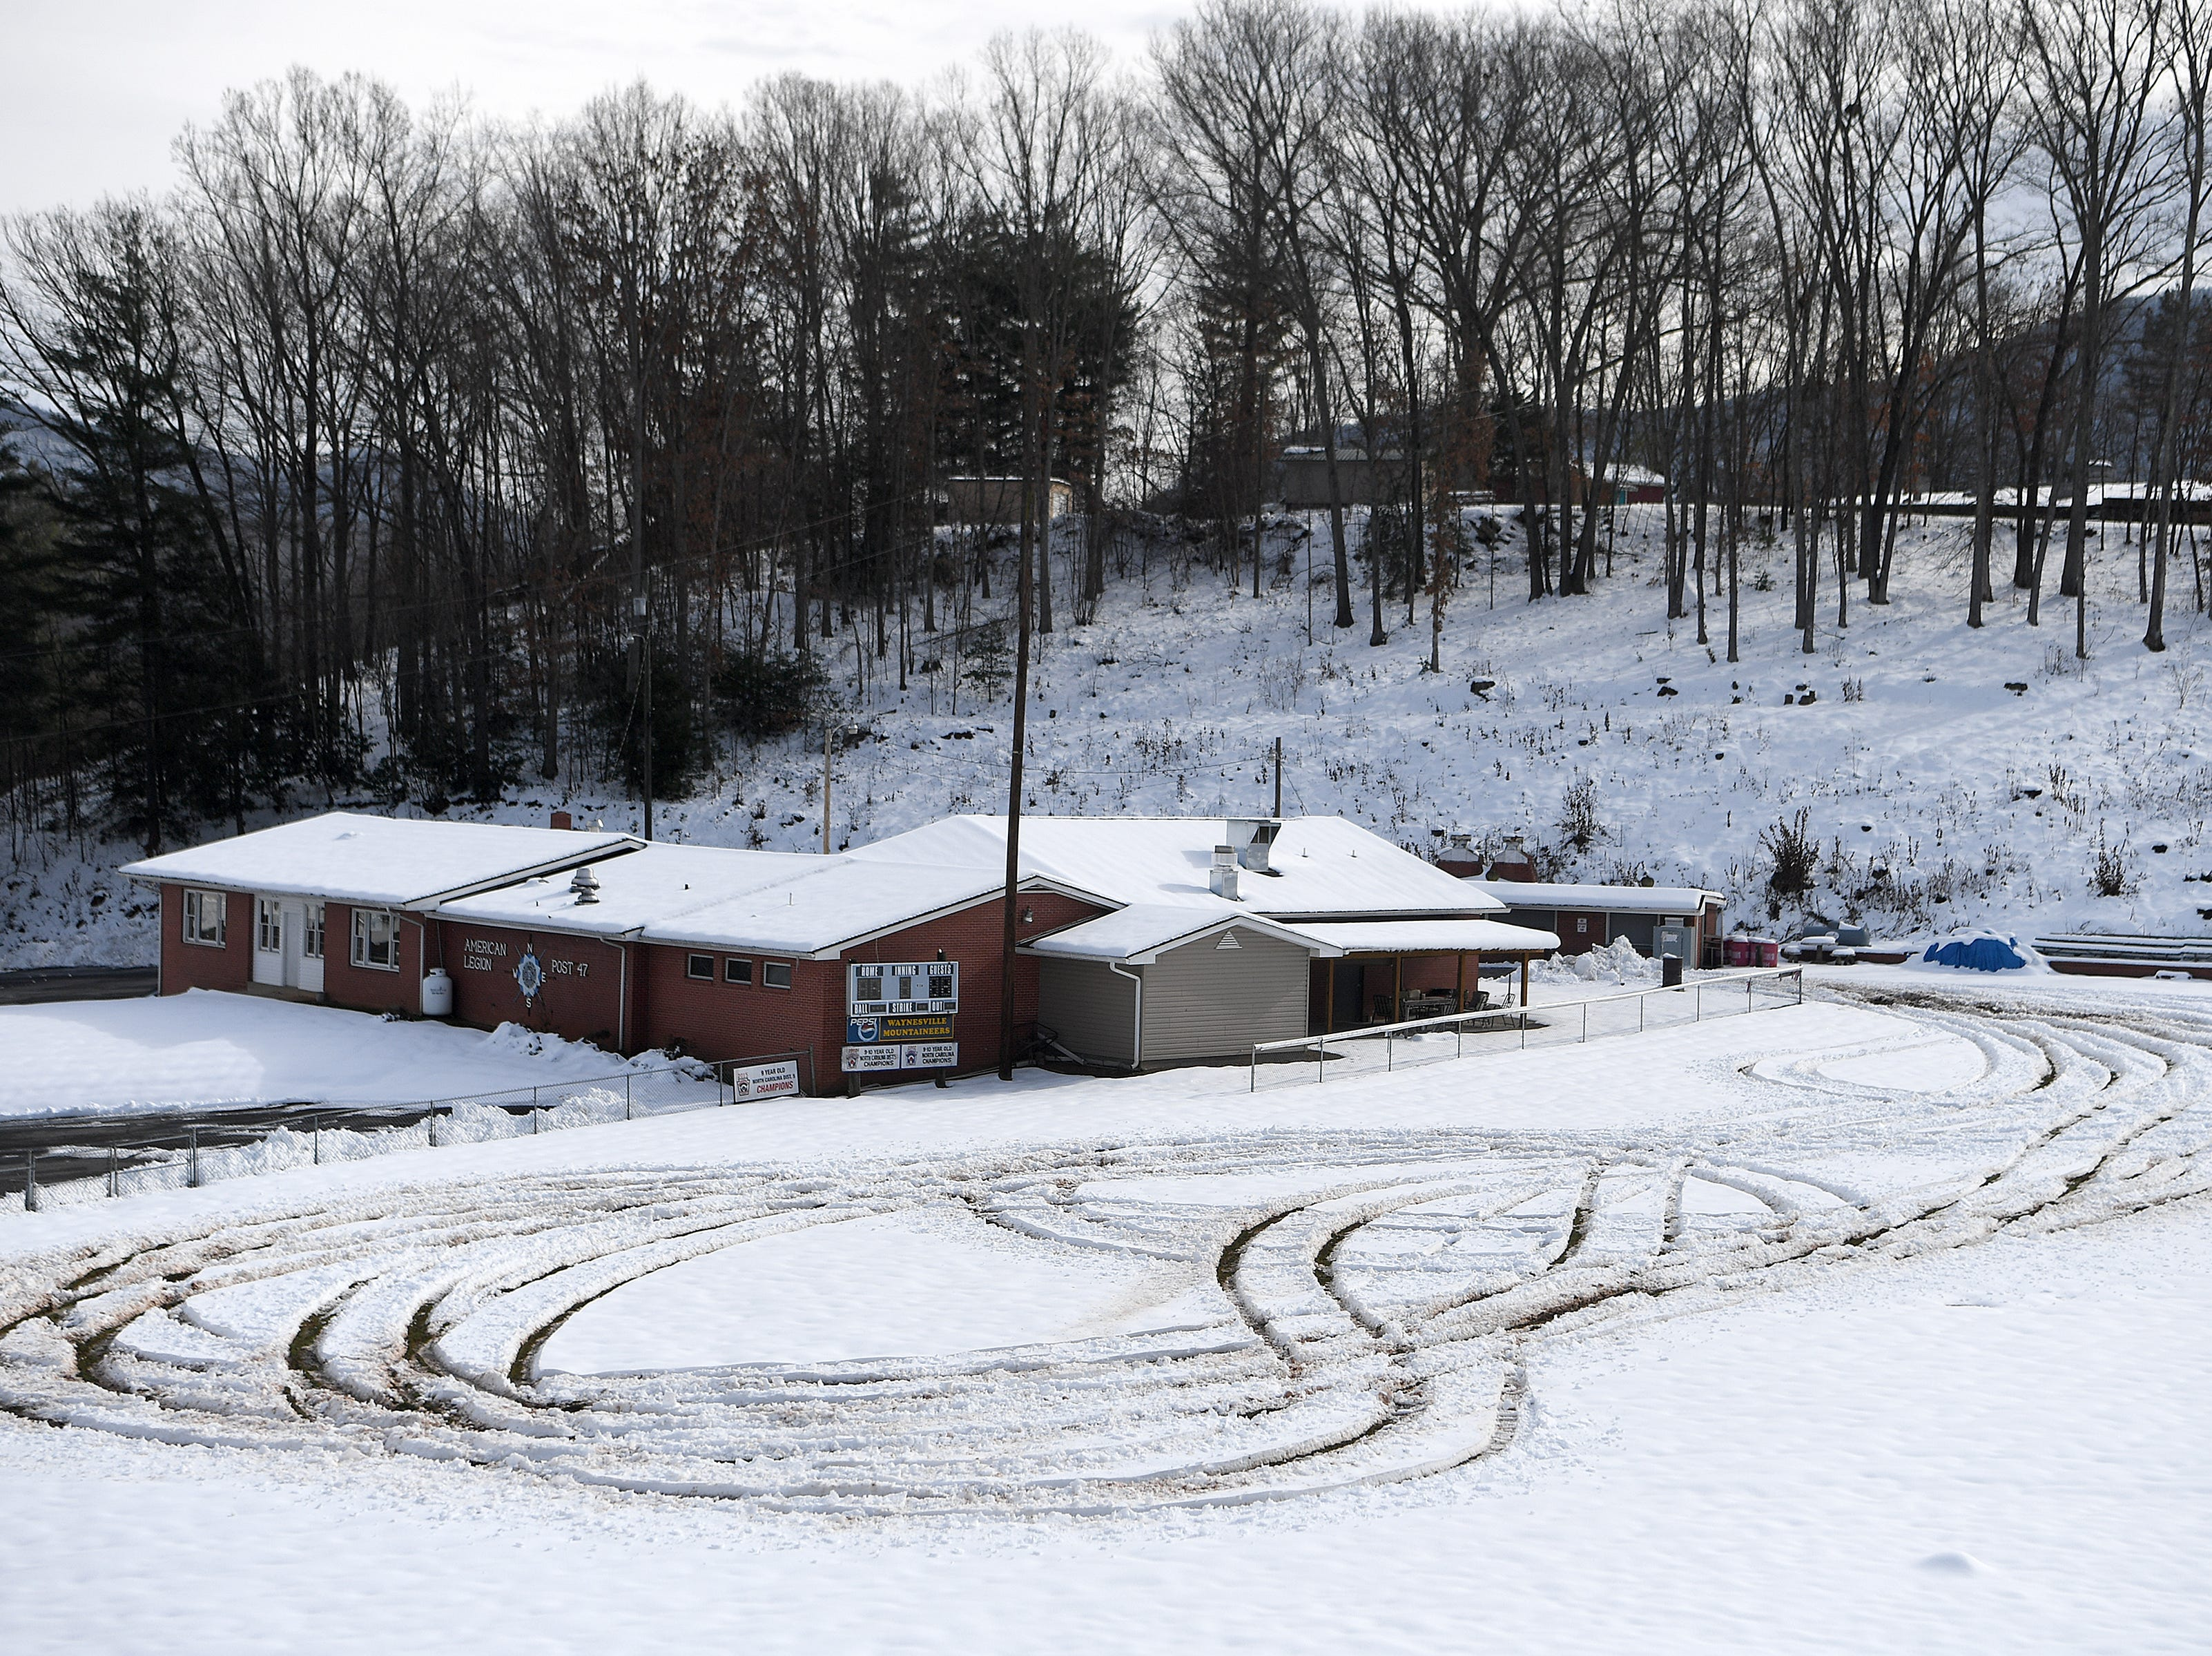 Tire tracks are seen in the snow at the American Legion ballpark in Waynesville following the weekend's snow on Dec. 12, 2018.